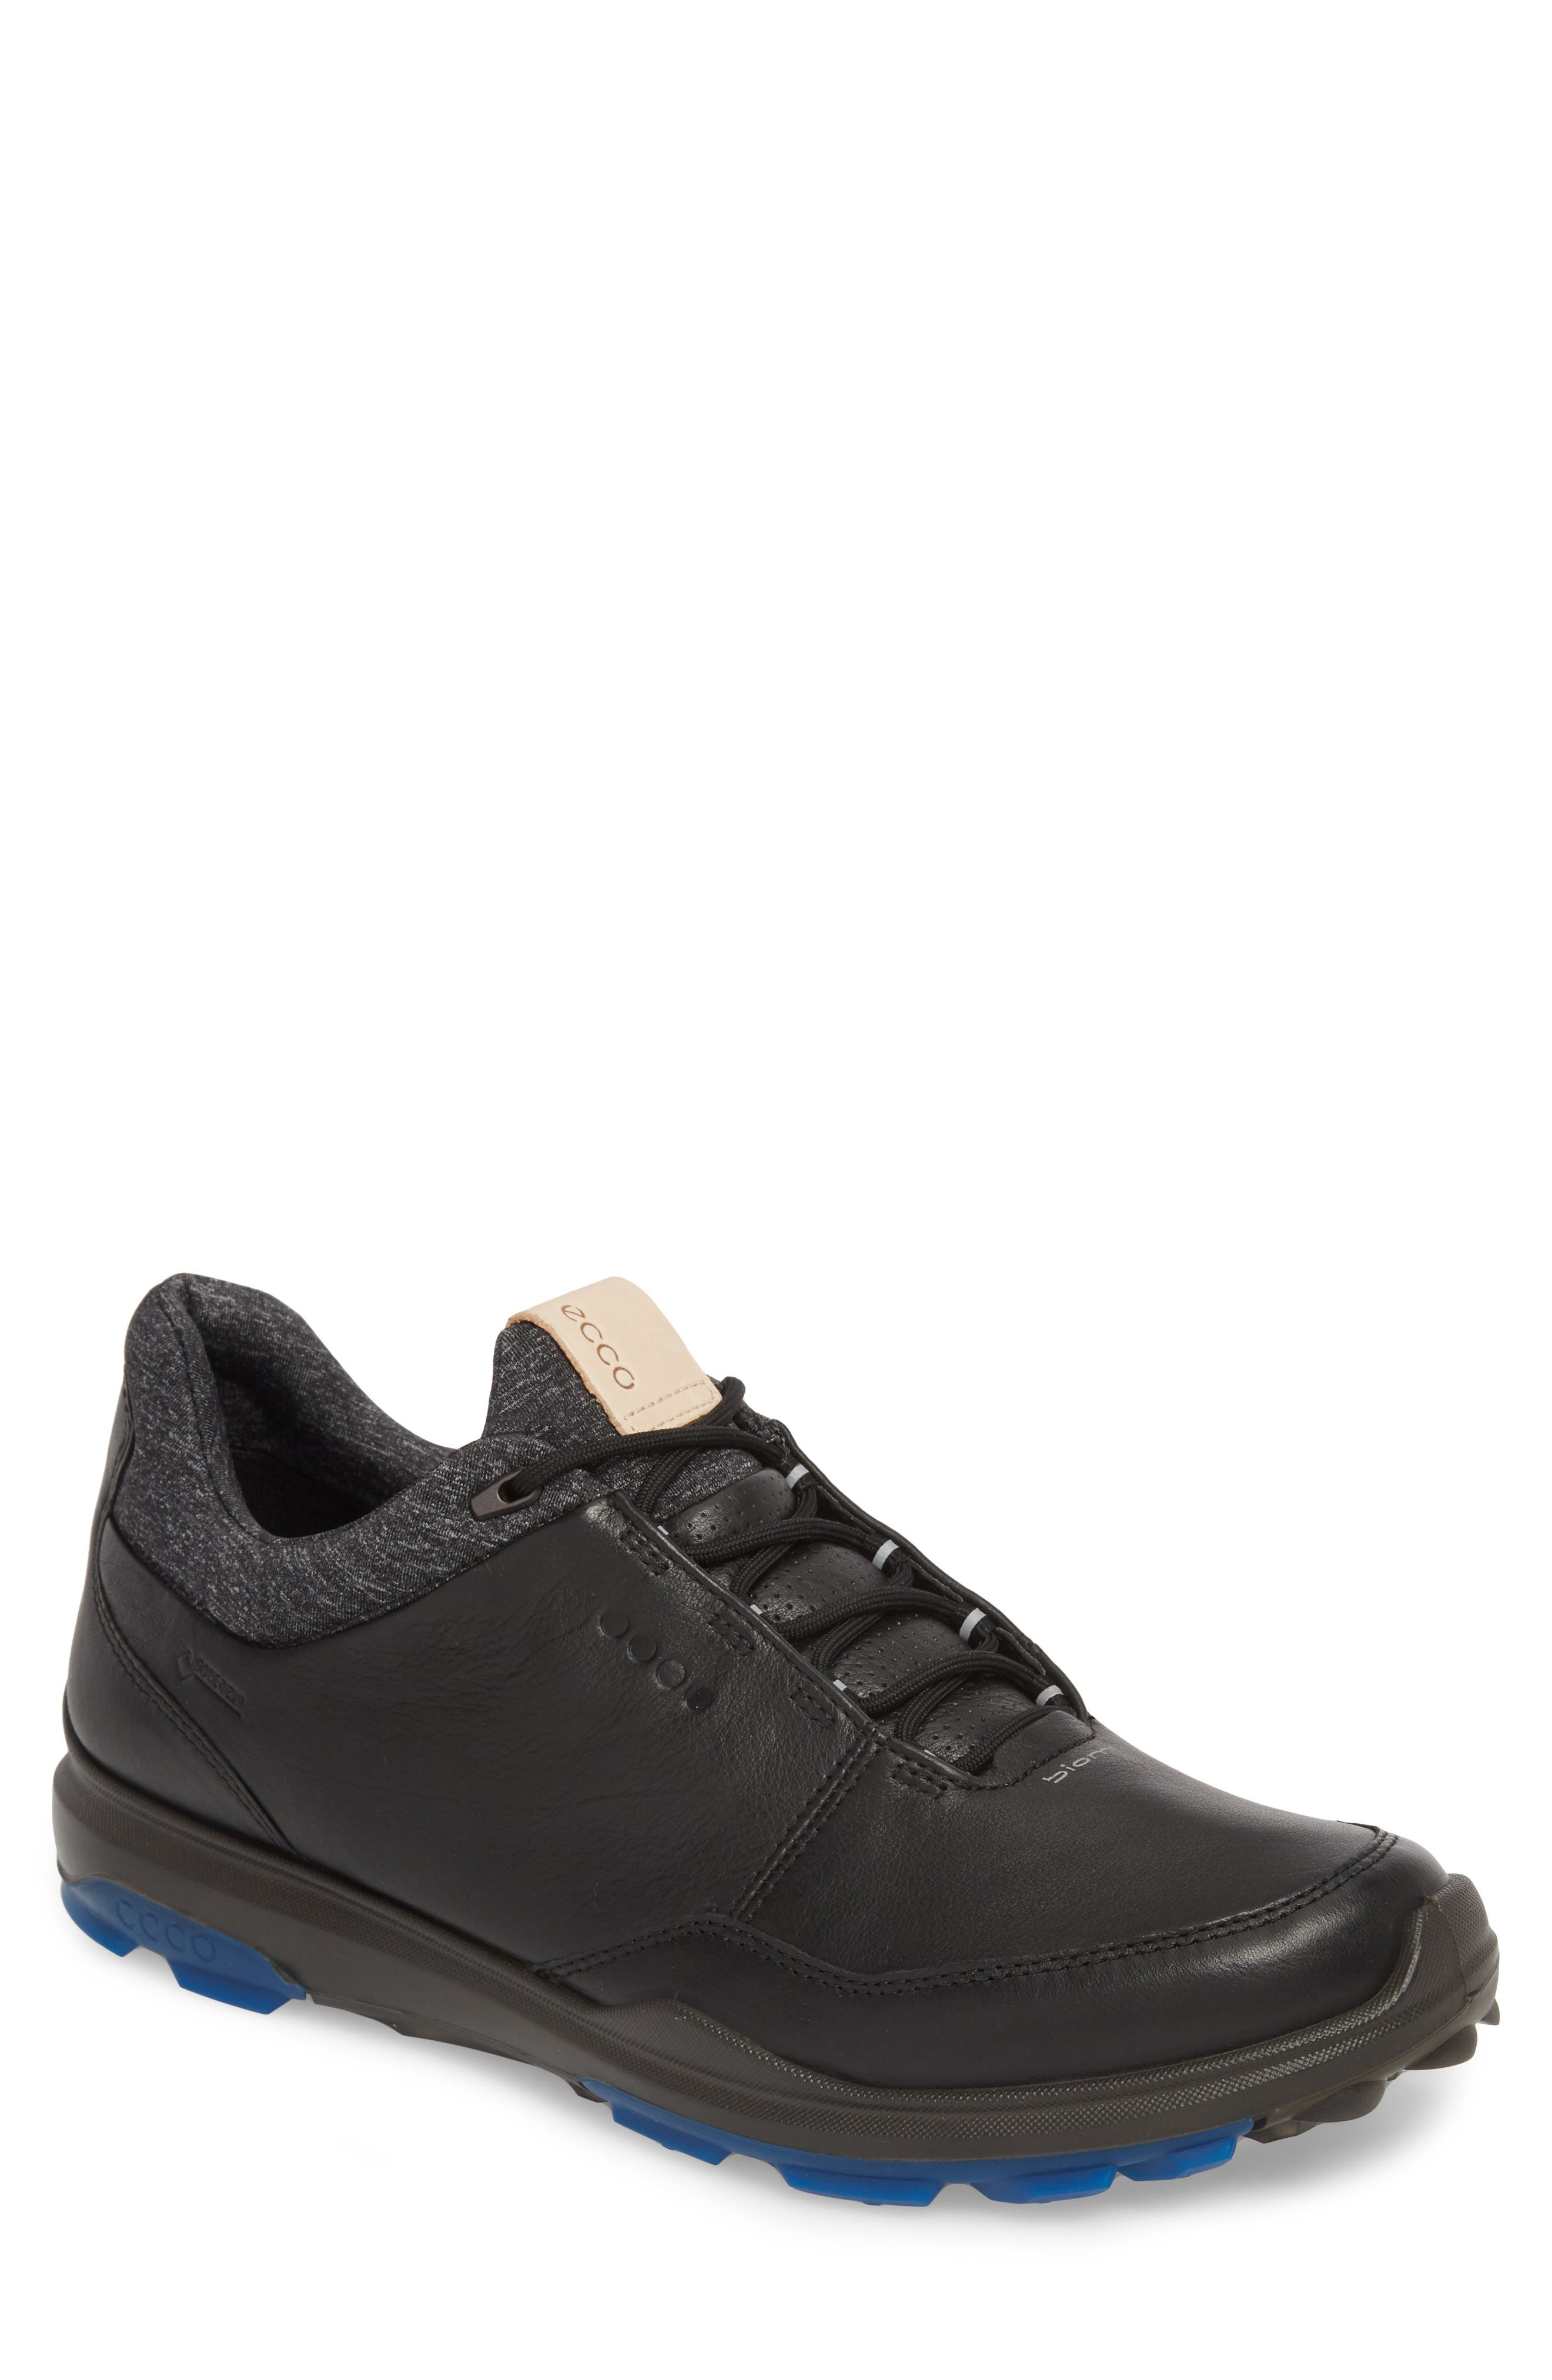 BIOM Hybrid 3 Gore-Tex<sup>®</sup> Golf Shoe,                         Main,                         color, BLACK/ BERMUDA BLUE LEATHER